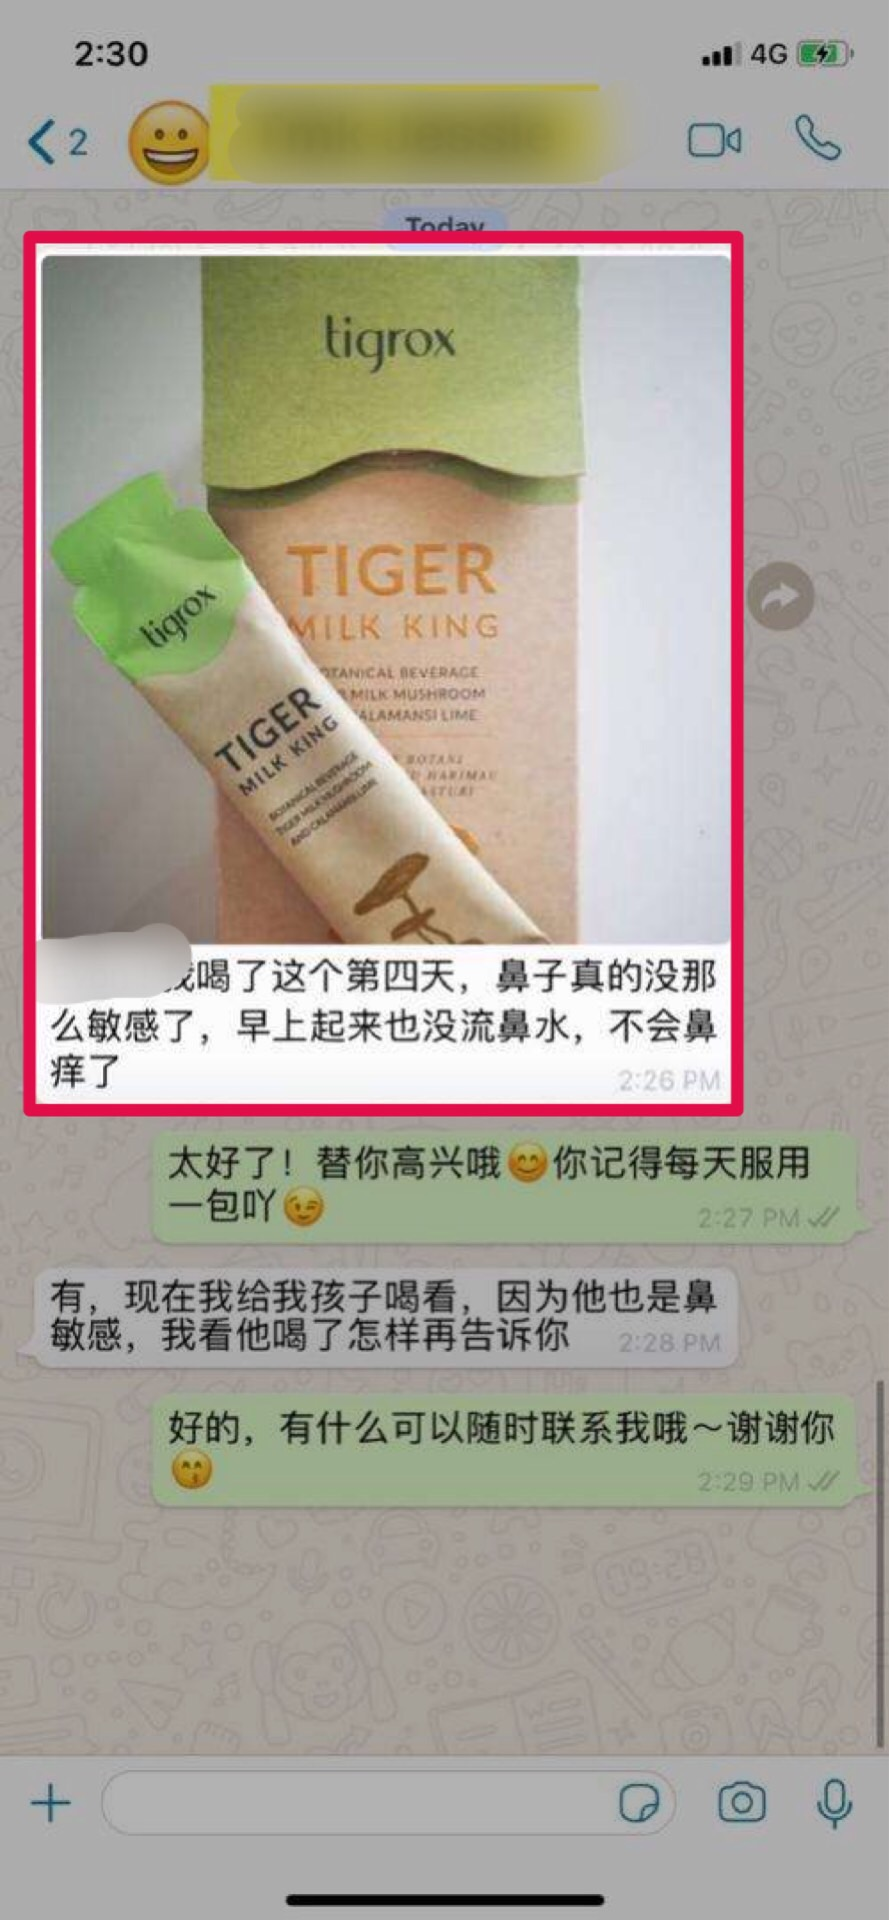 Wellous Tigrox Tiger Milk King Review Testimonial MyVpsGroup-8